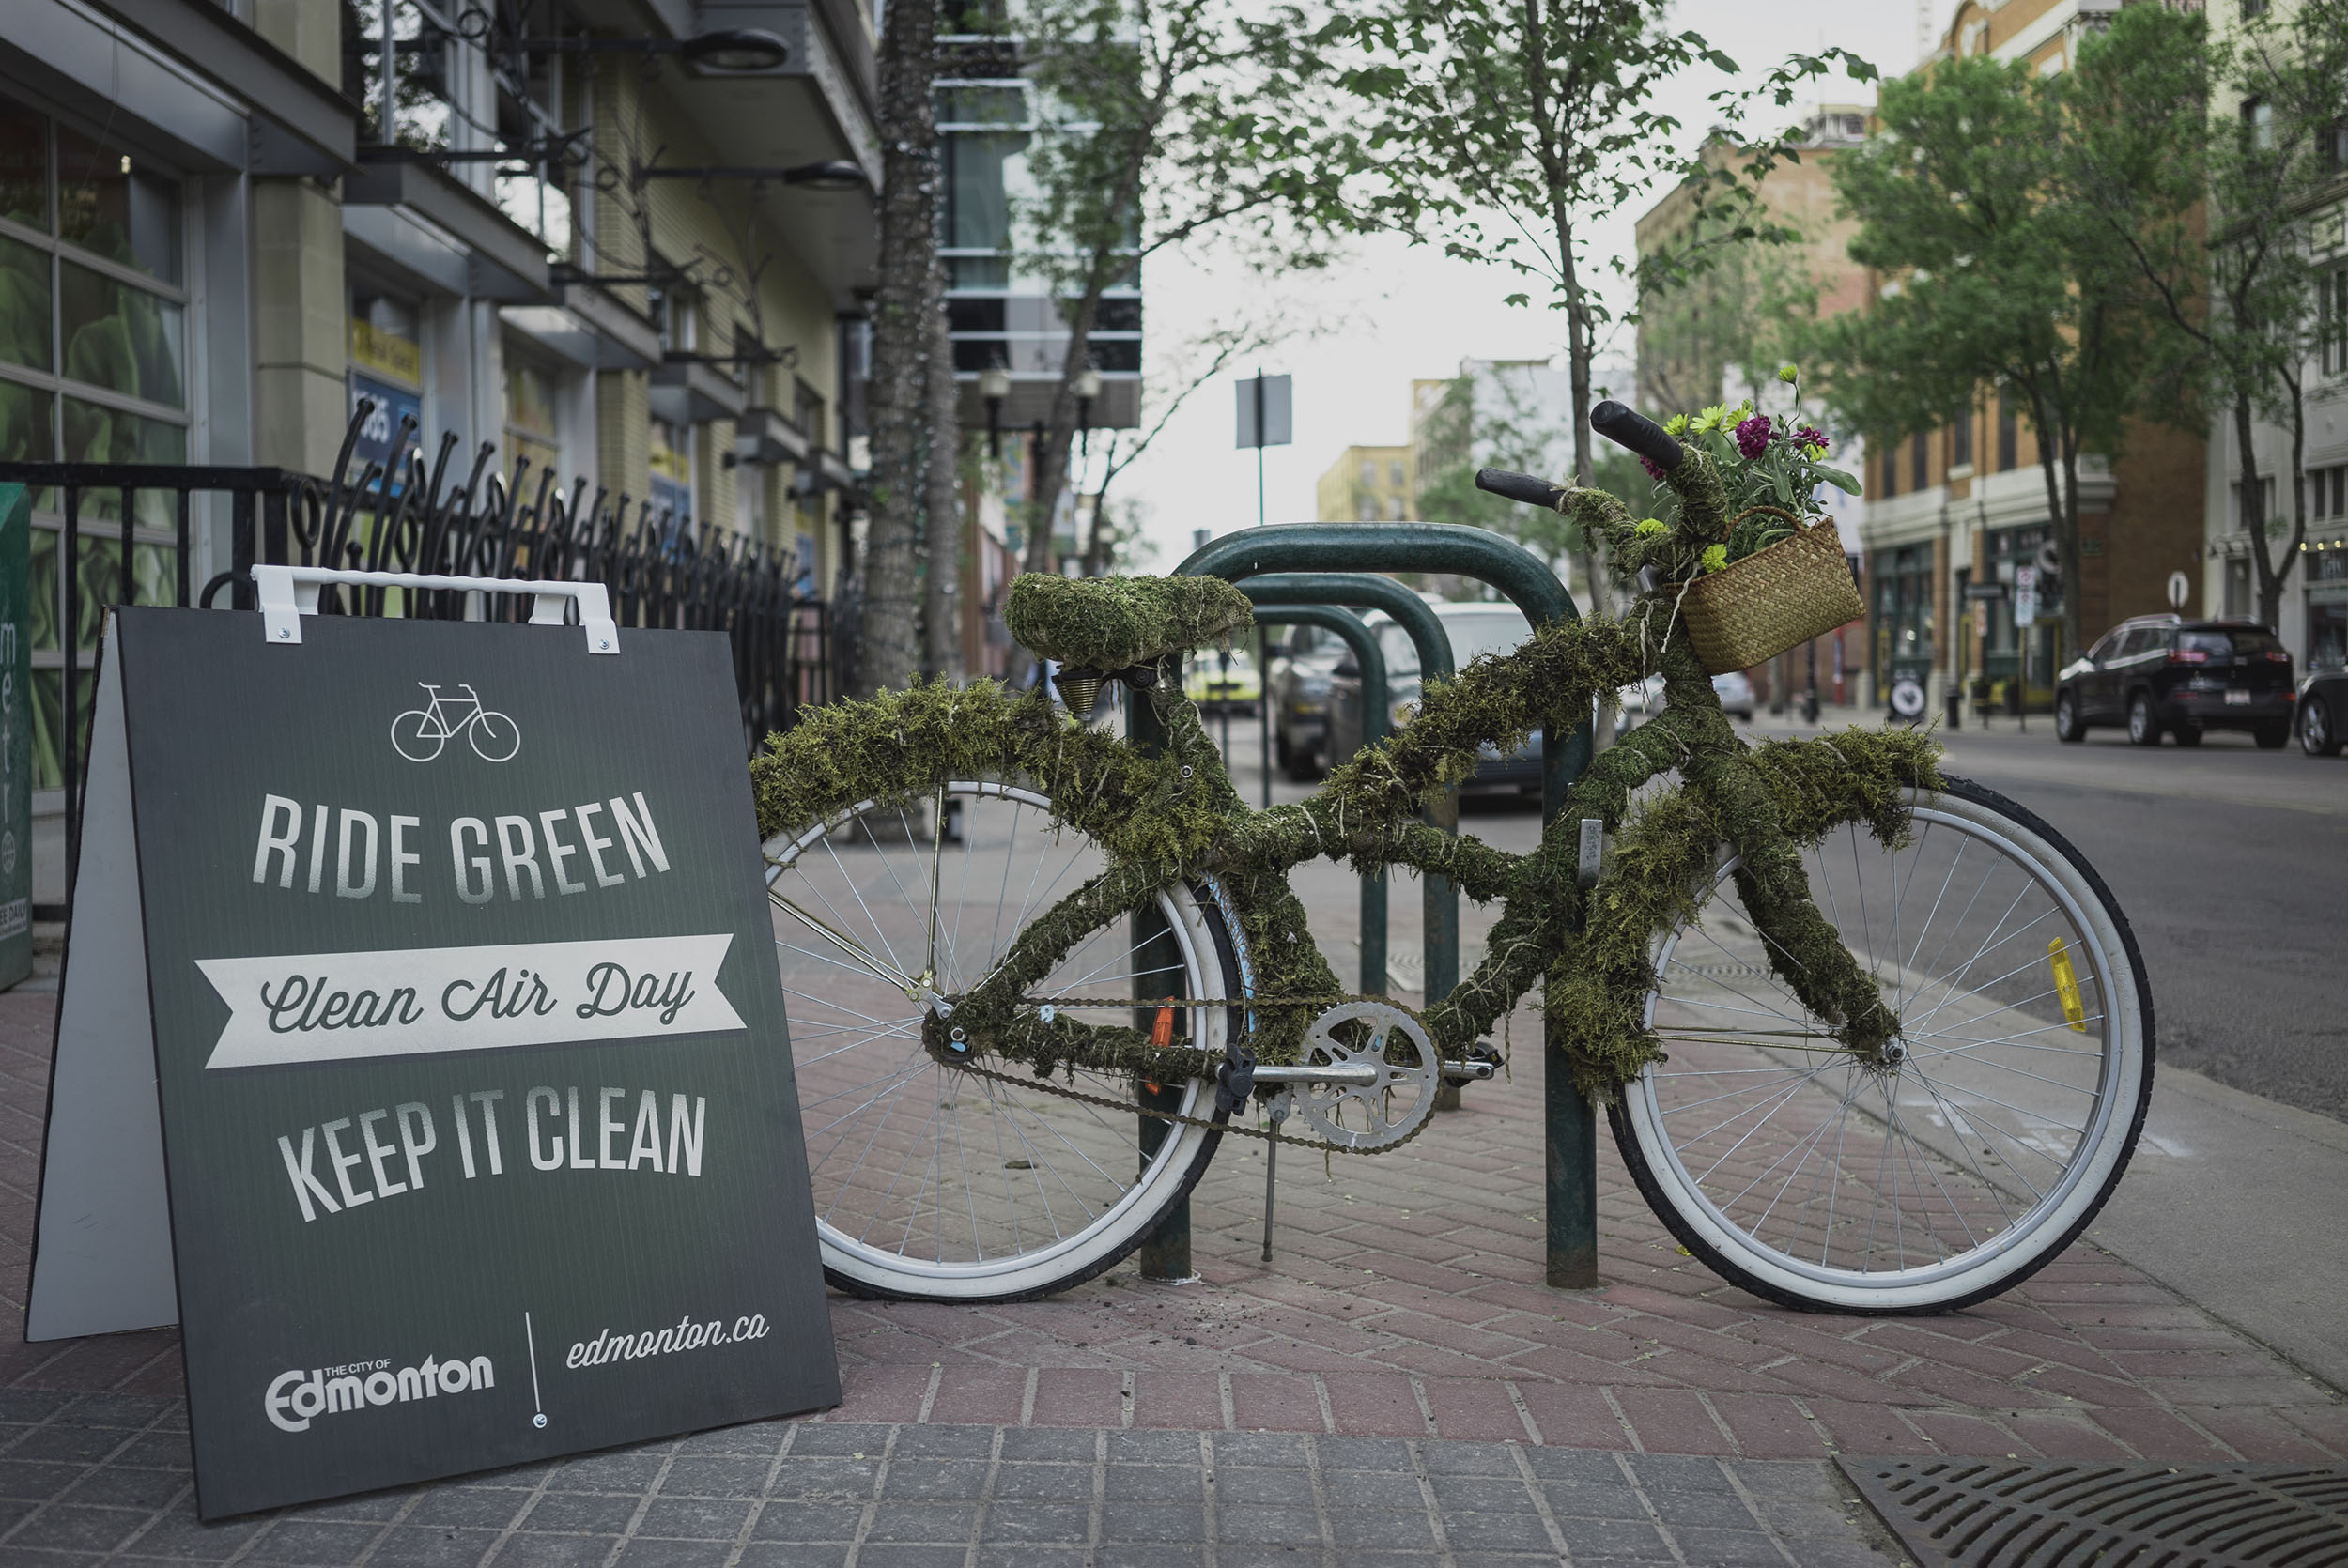 Green Bike advertising campaign in Edmonton